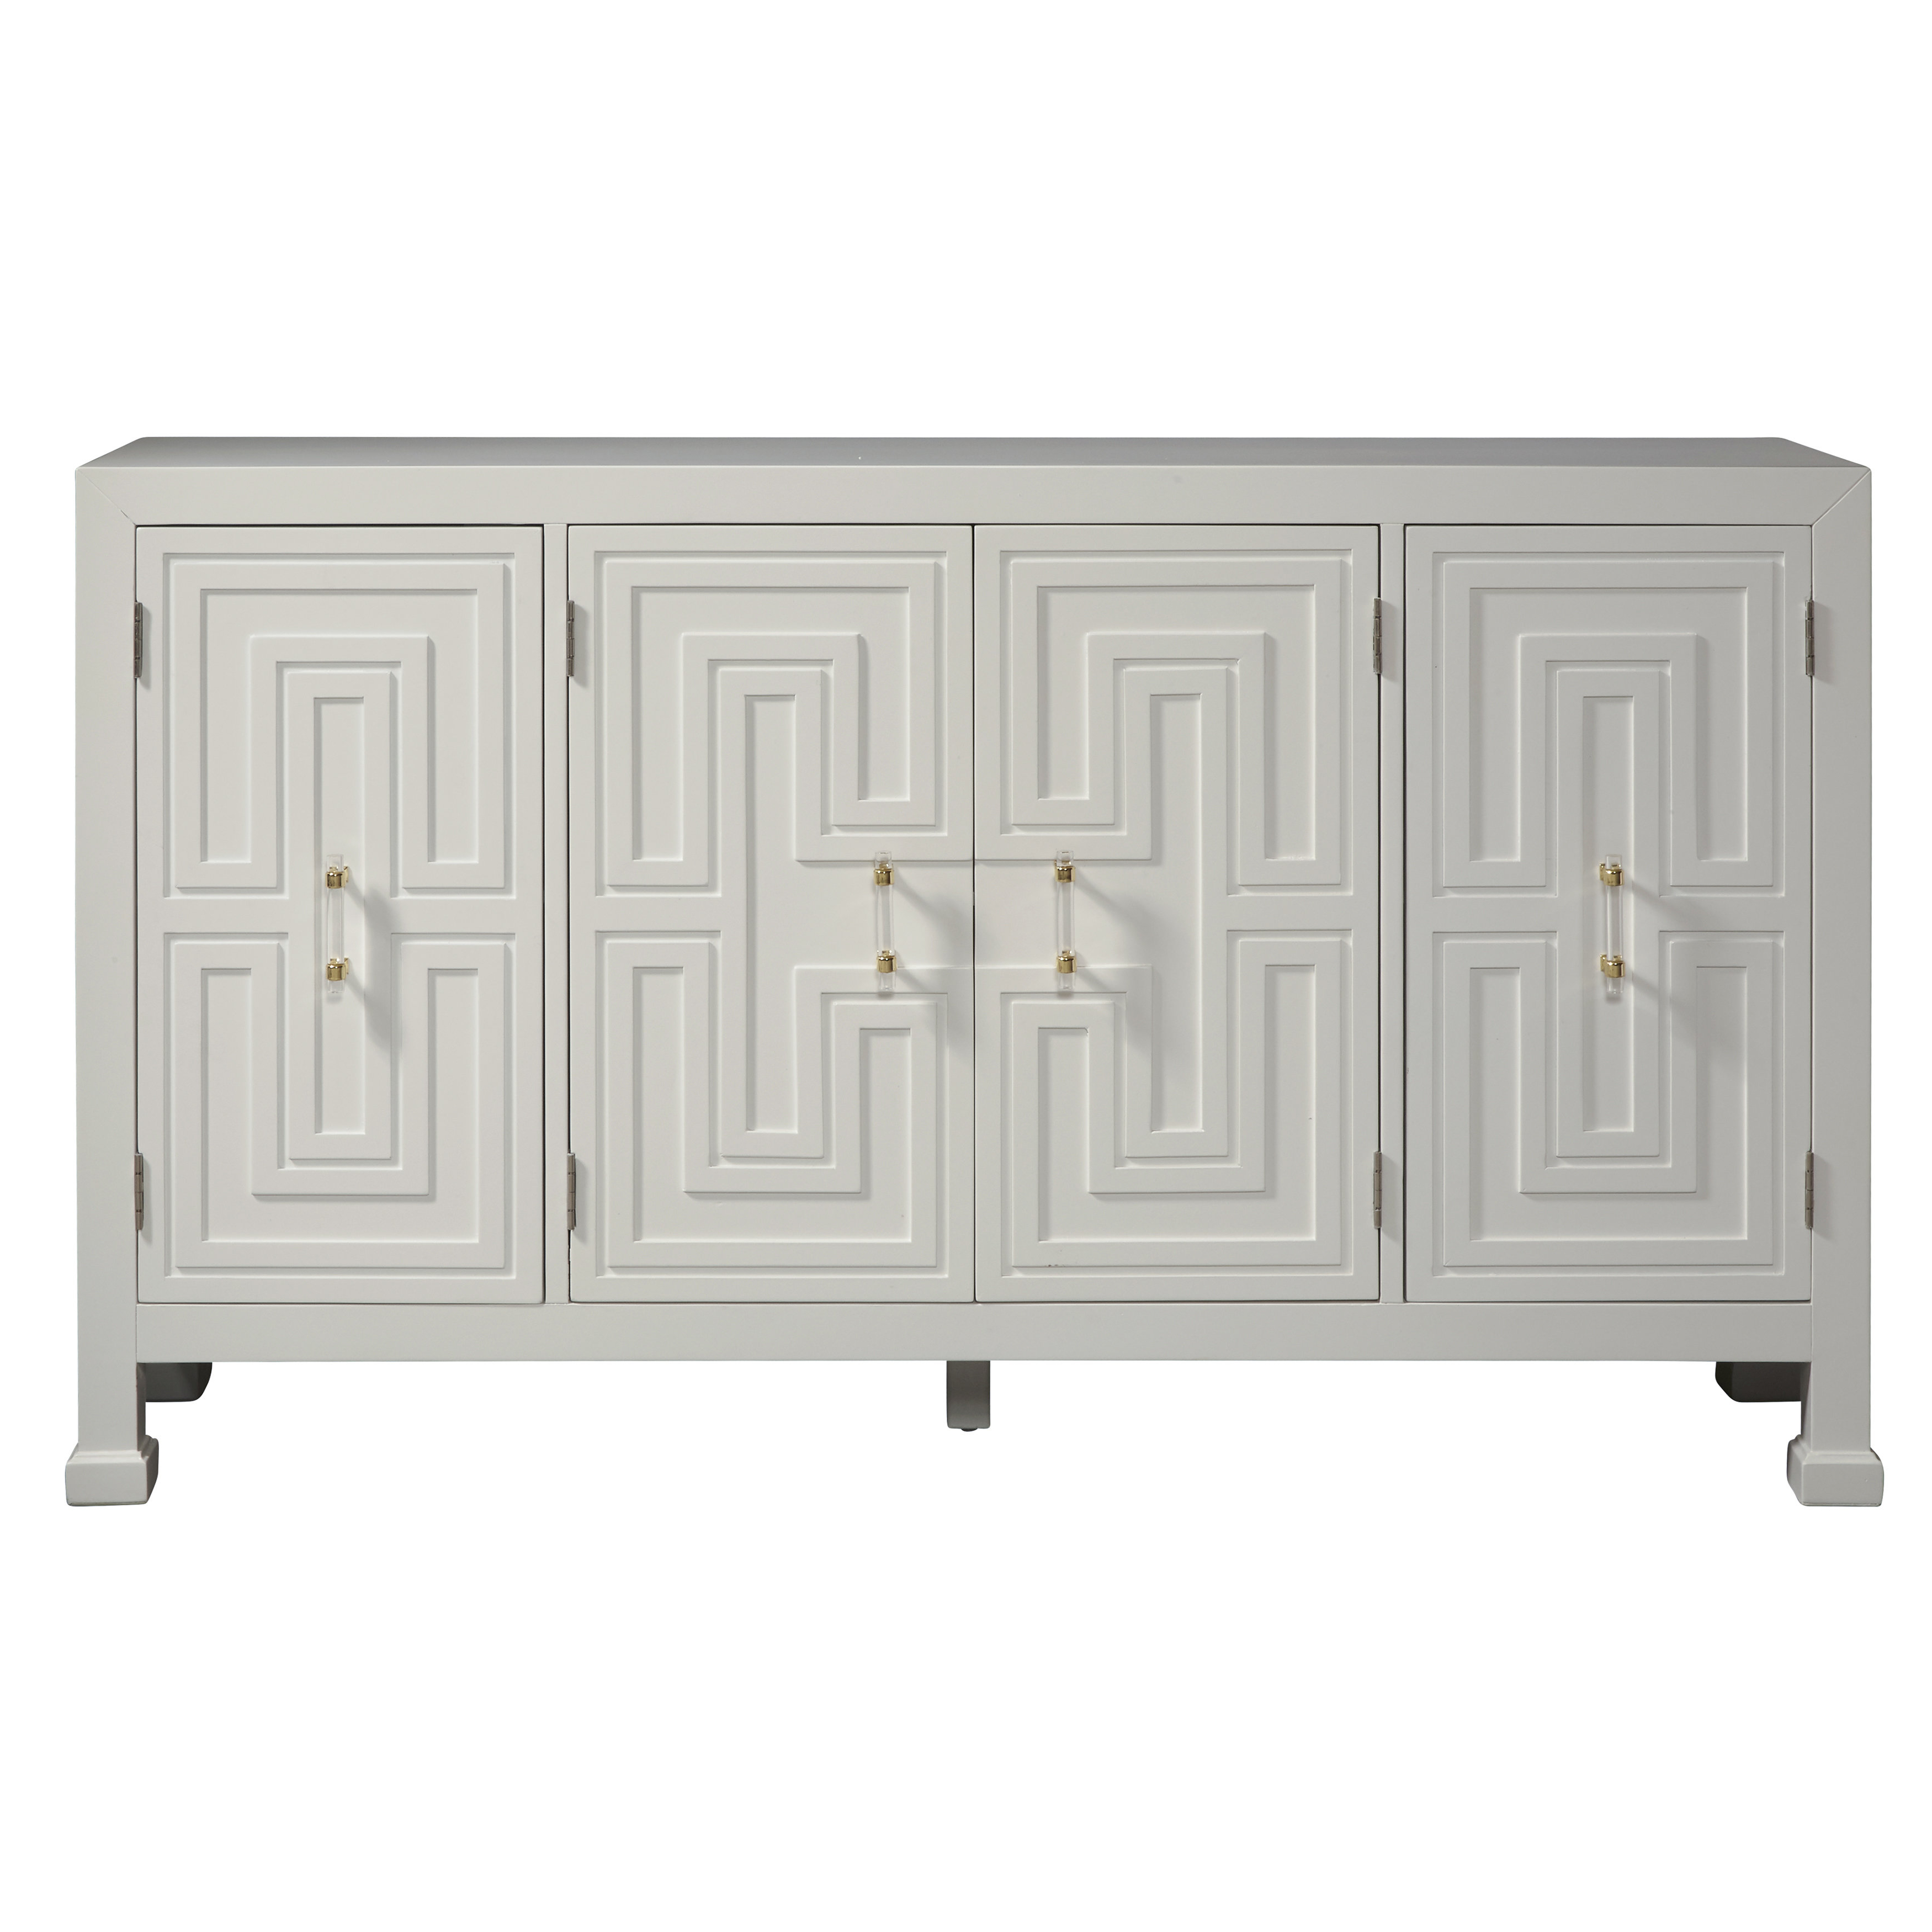 Mercer41 Lainey Credenza Intended For Errol Media Credenzas (View 13 of 20)